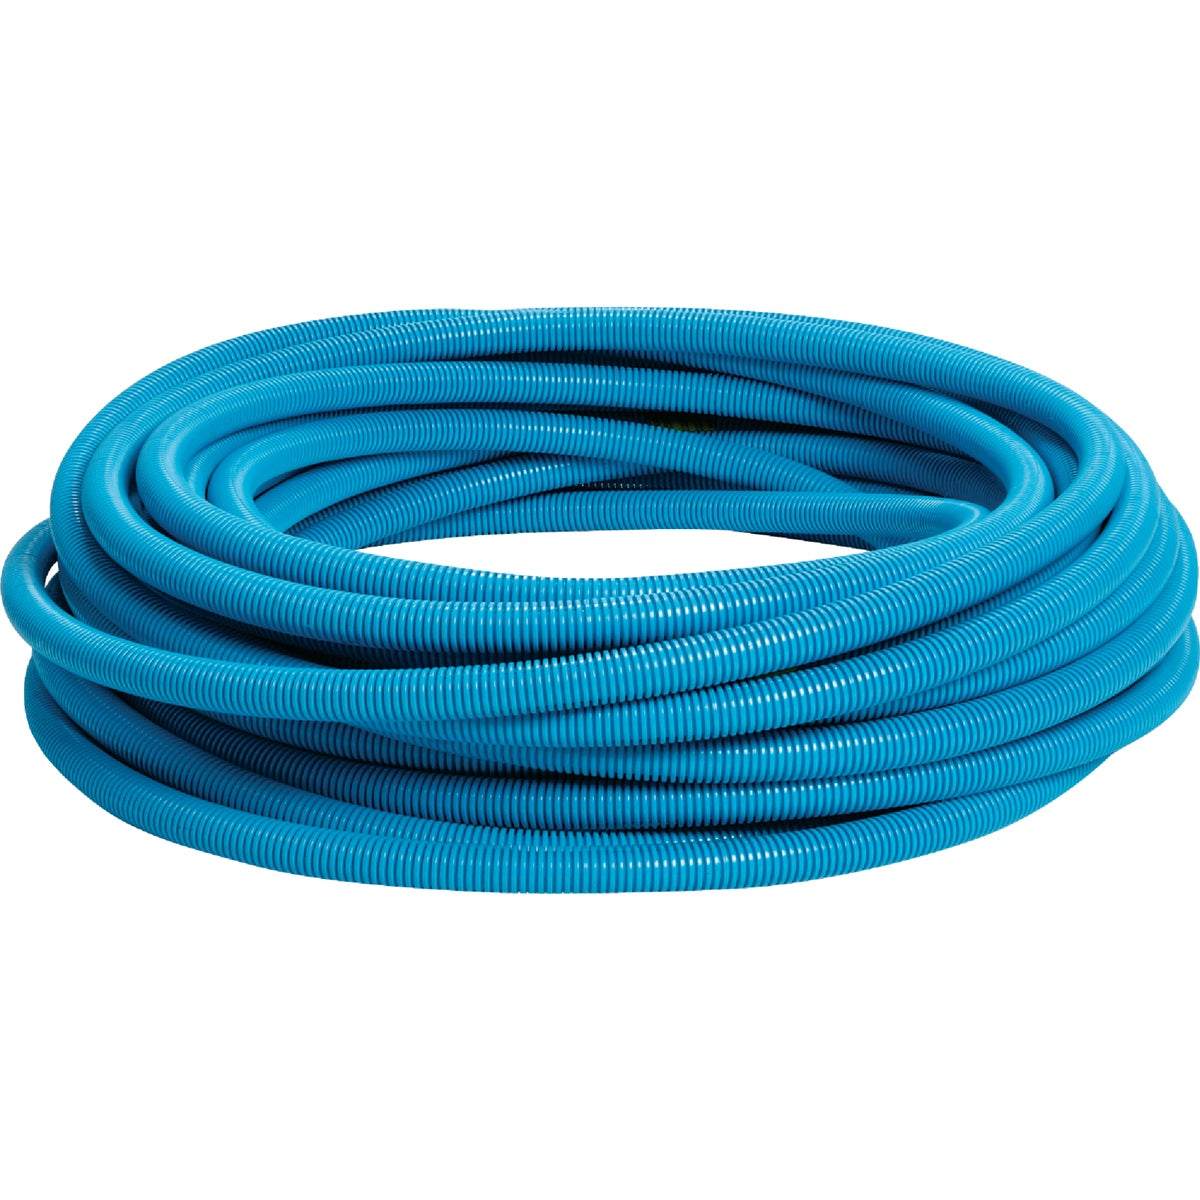 "100' 1"" FLEX CONDUIT - 12008-100 by Thomas & Betts"